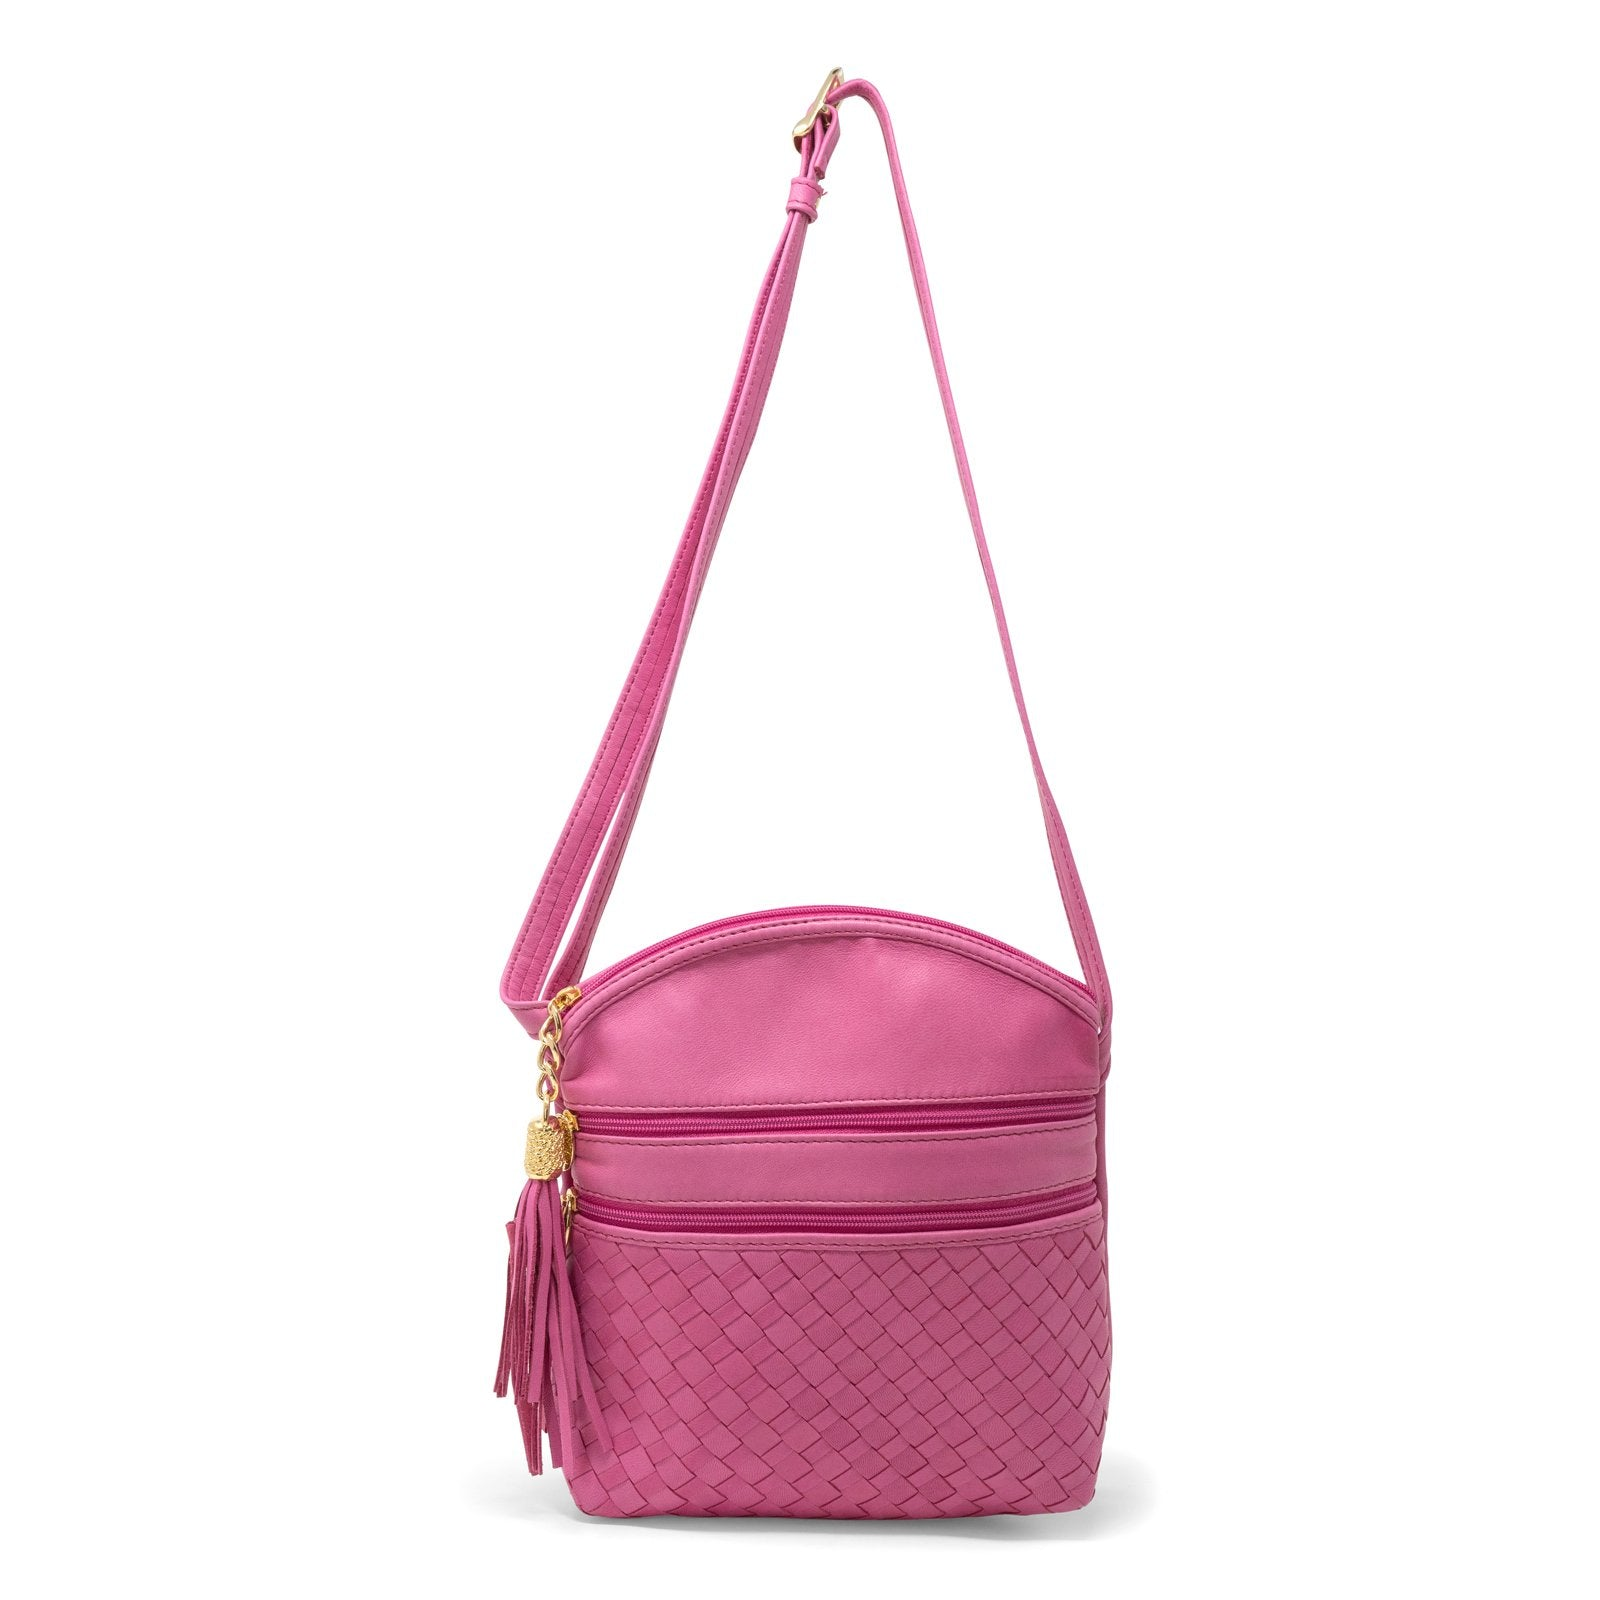 Women Intrecciato Leather Soft Messenger LUC963 Fucsia Quadro - Jennifer Tattanelli